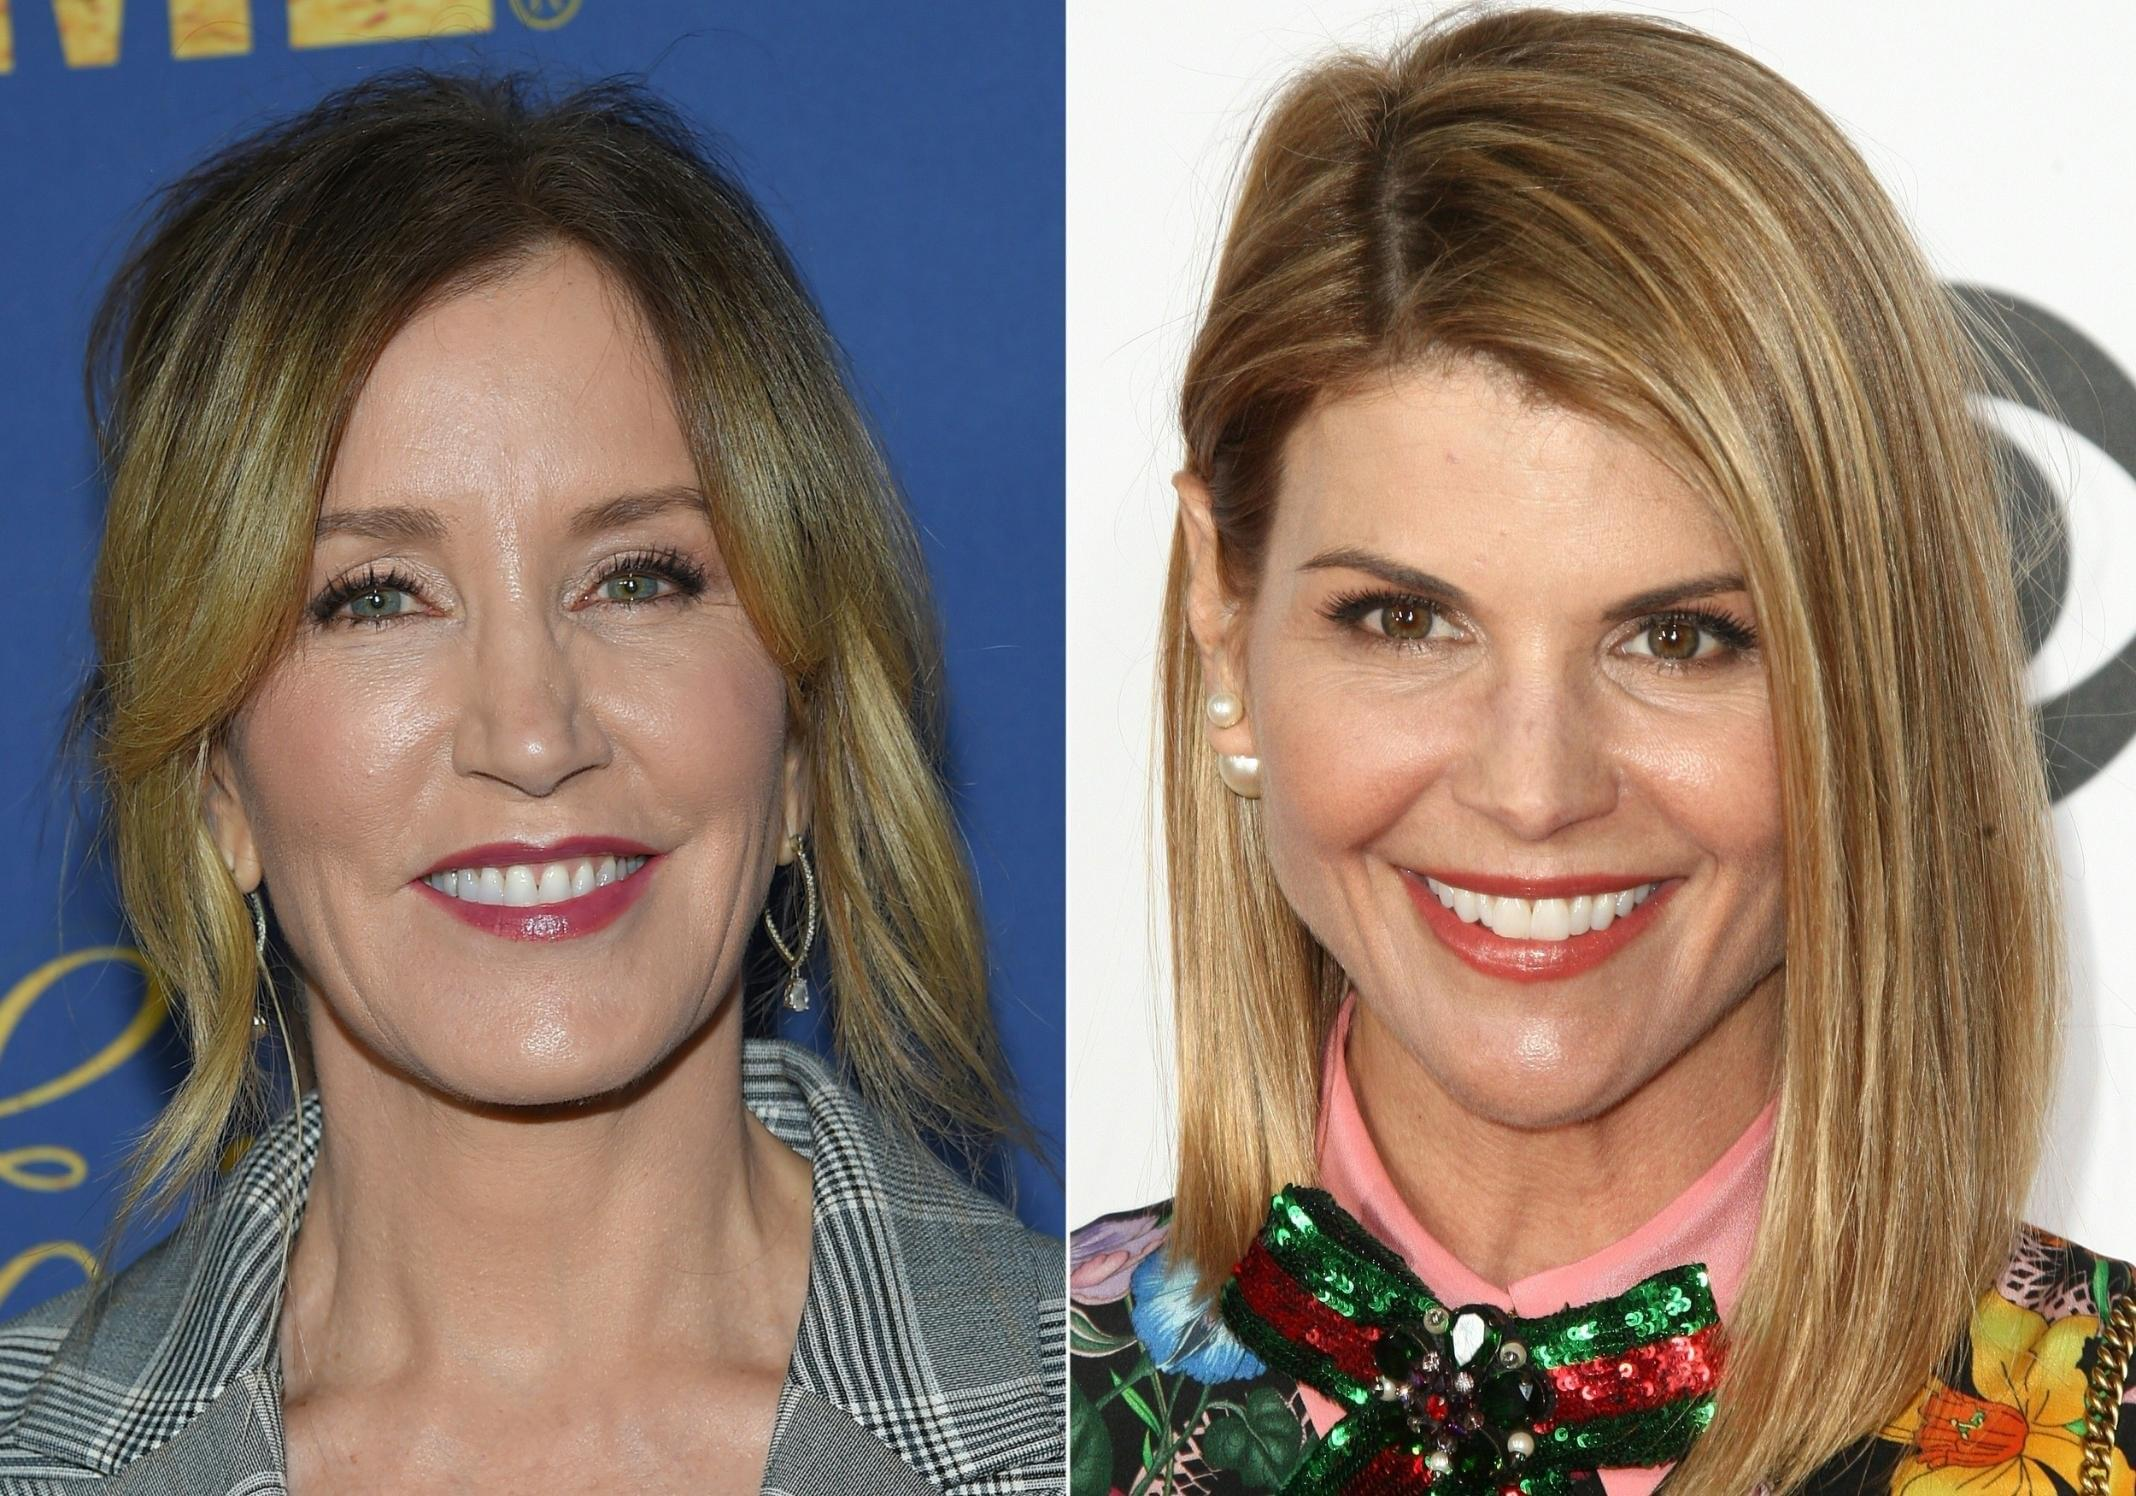 Lori Loughlin and Felicity Huffman appear in court to face college admissions charges